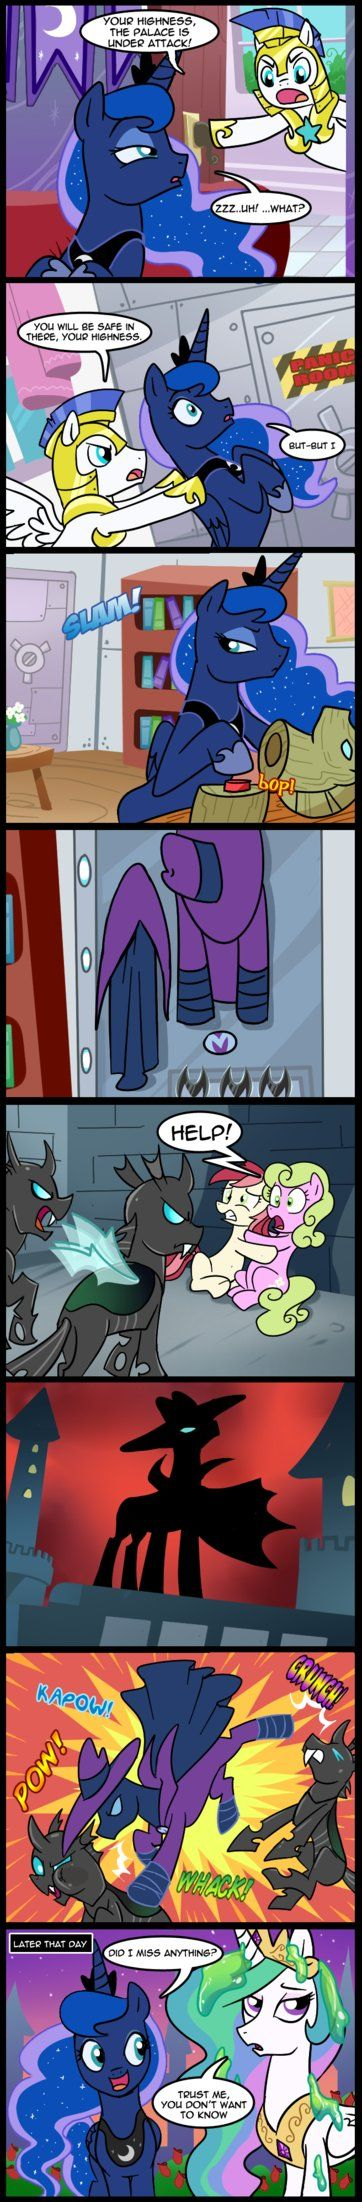 MLP: Didn't miss anything (Commissioned) by tan575 on DeviantArt